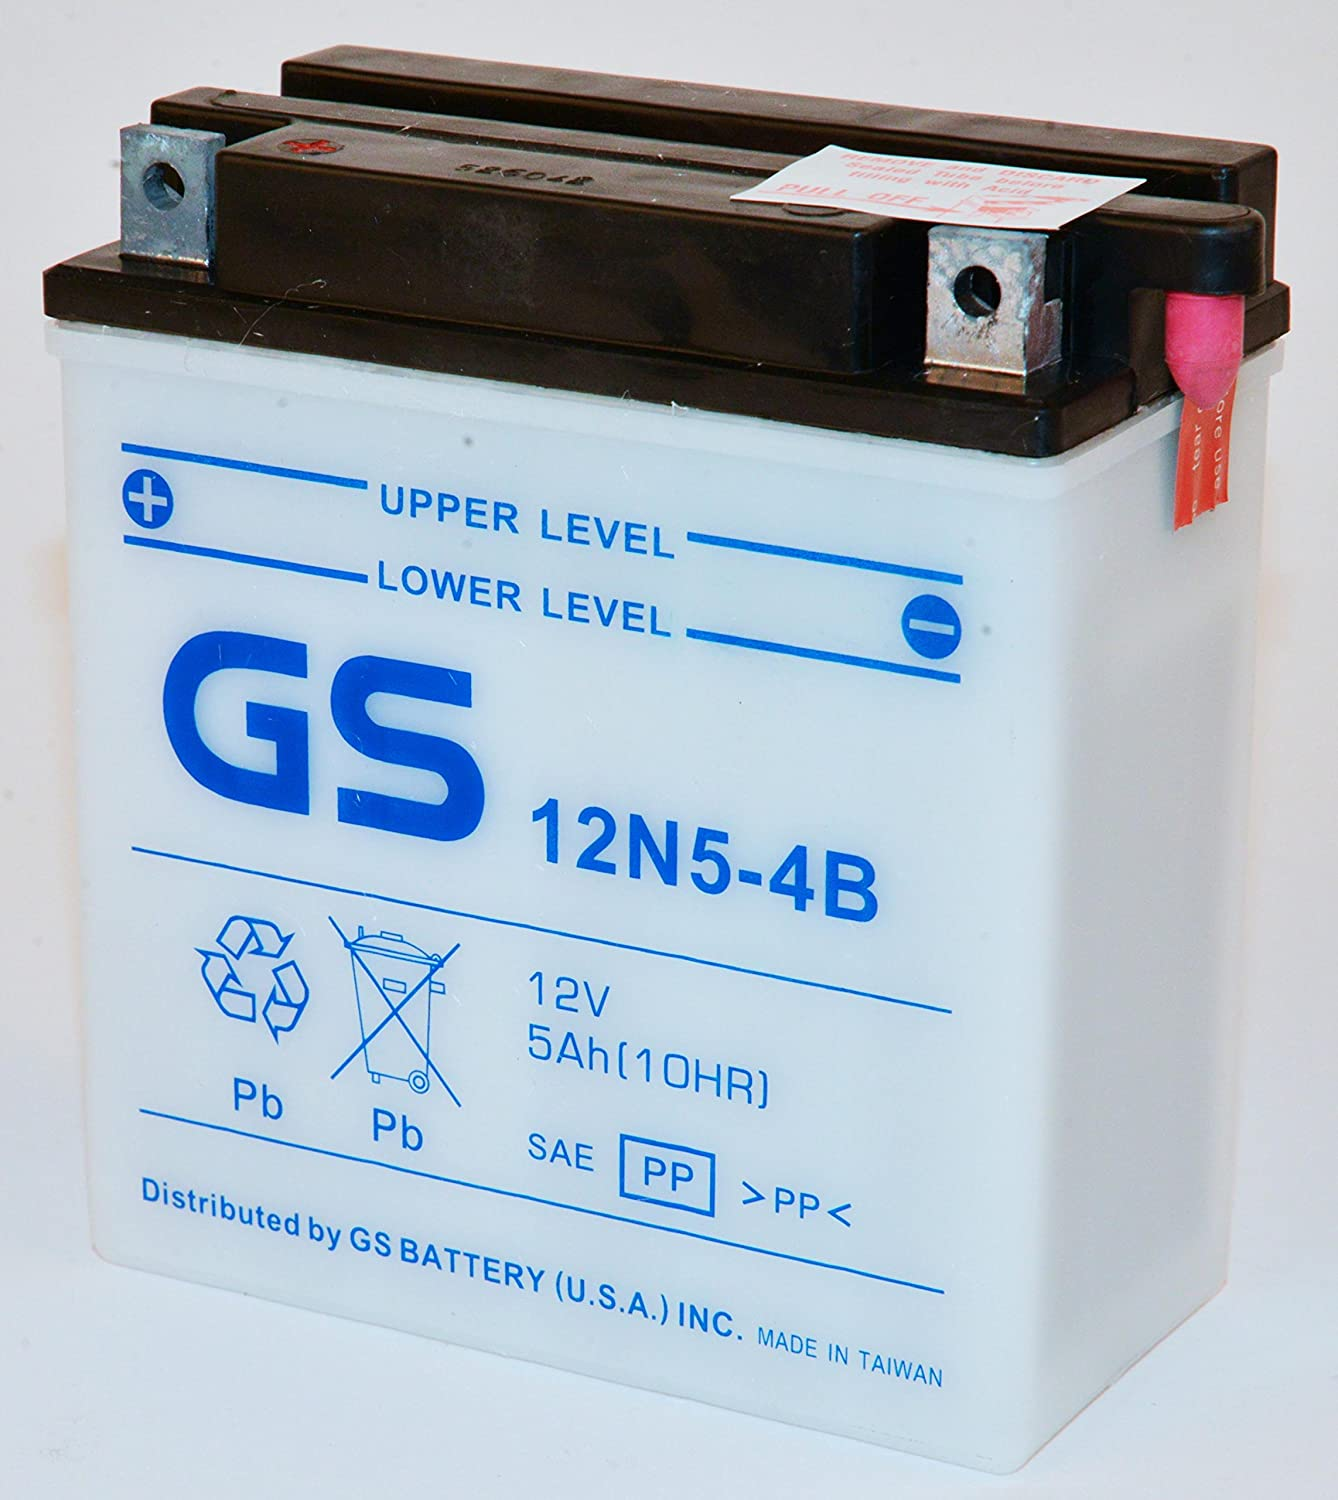 Honda Battery Warranty >> Premium Japanese Motorcycle Battery 12v 5ah For Honda Motorcycles From Gs Battery With 6 Month Warranty